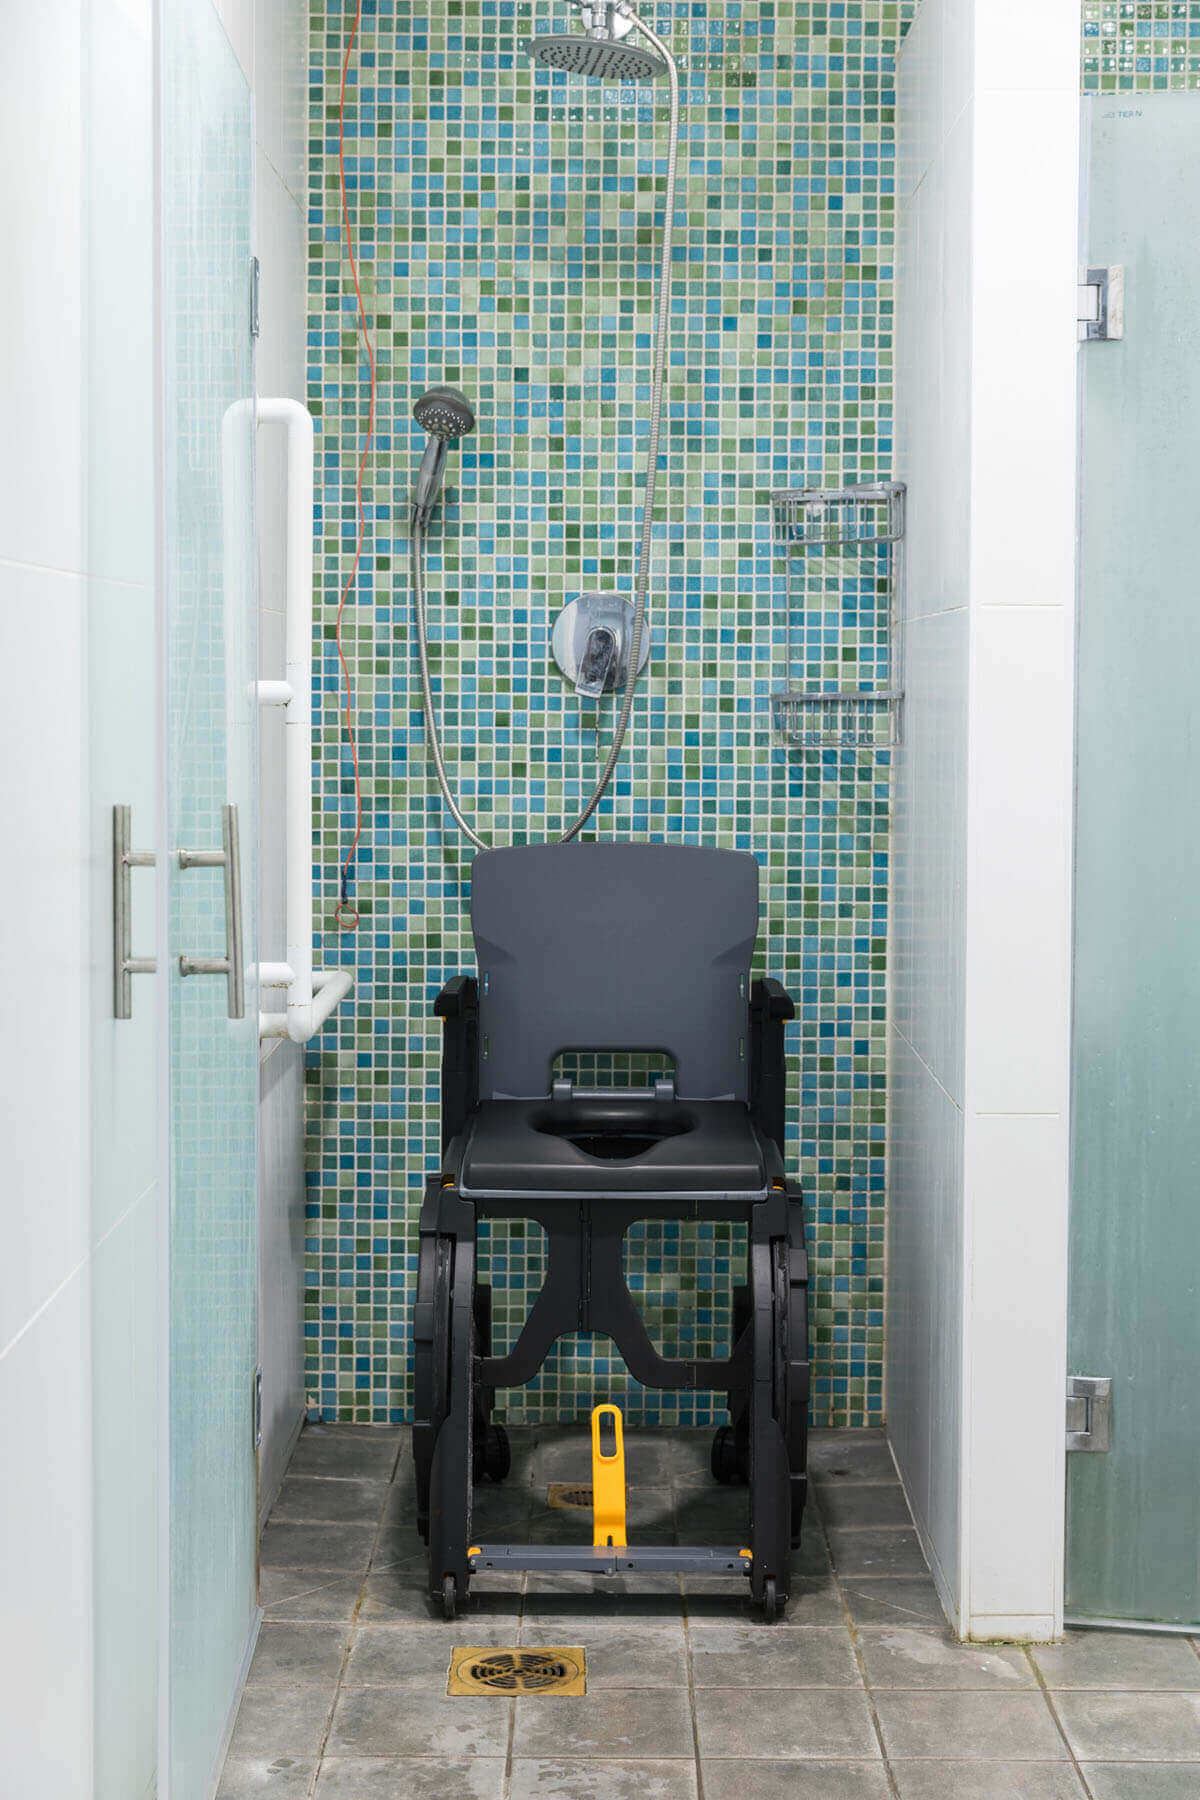 The Seatara WheelAble Toilet and Shower Chair in a shower with green tiles